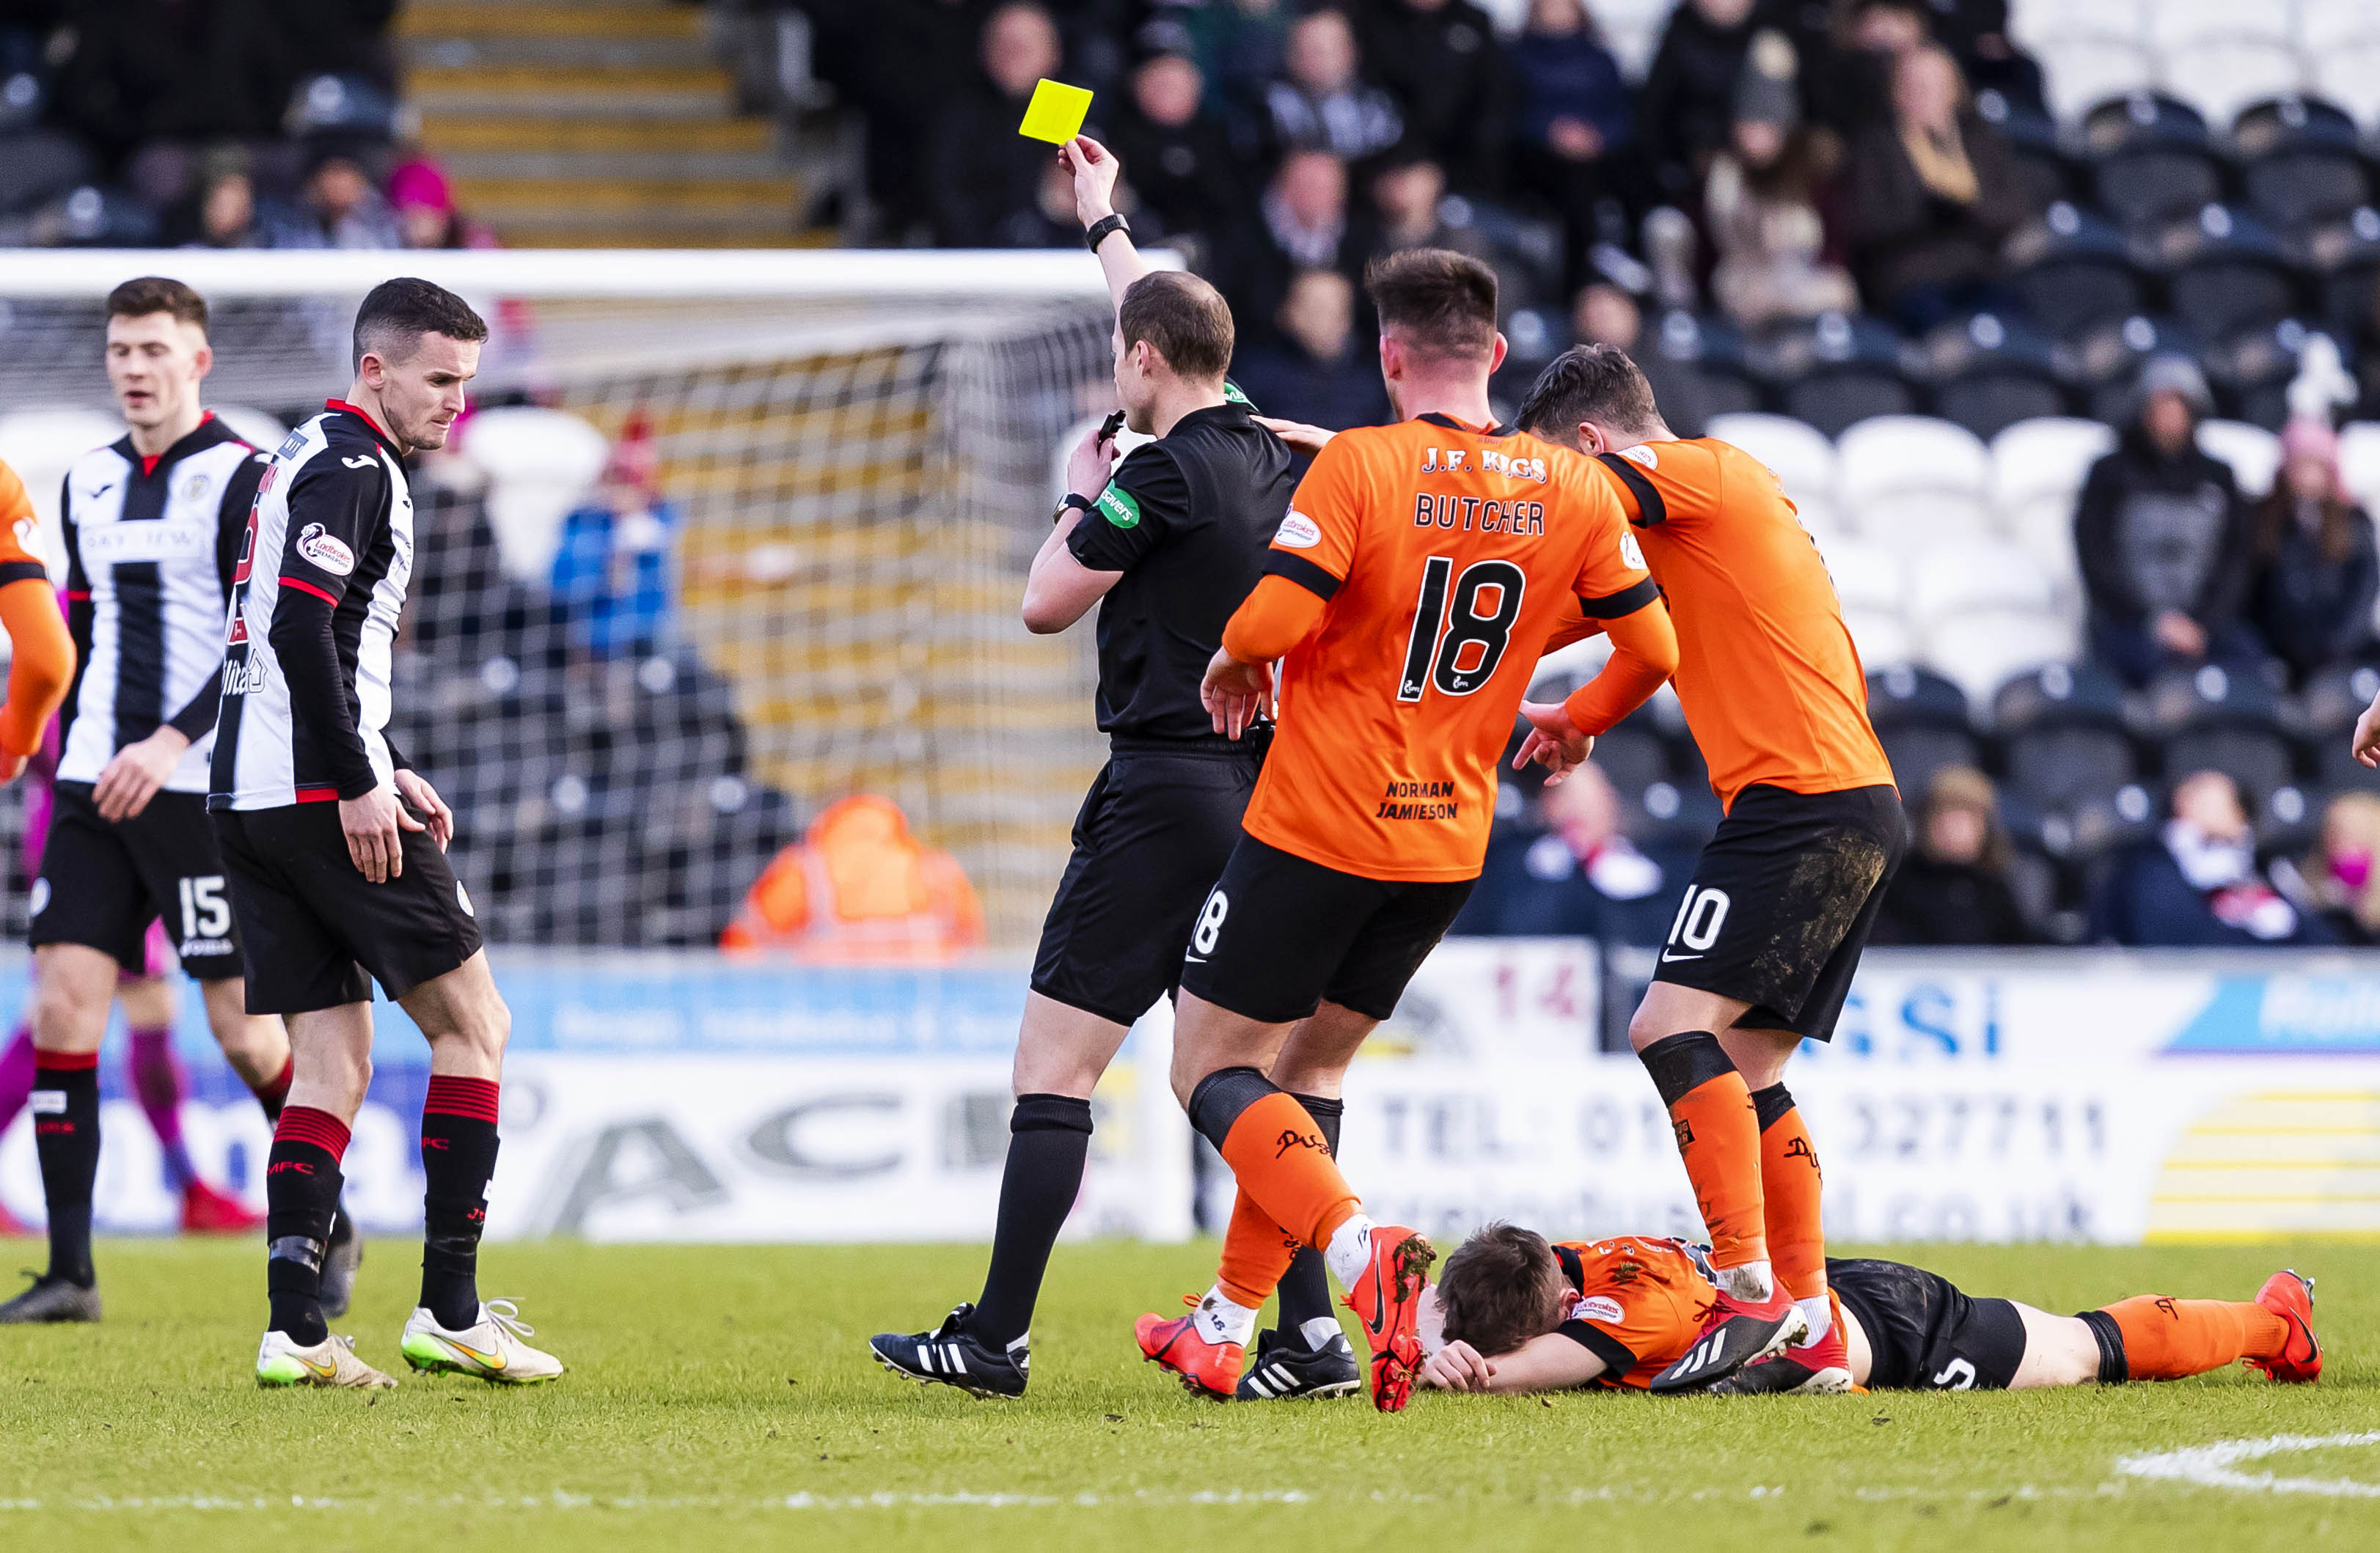 St Mirren's Paul McGinn (L) is booked by Willie Collum (centre) after clashing with Dundee United's Cammy Smith (on ground).